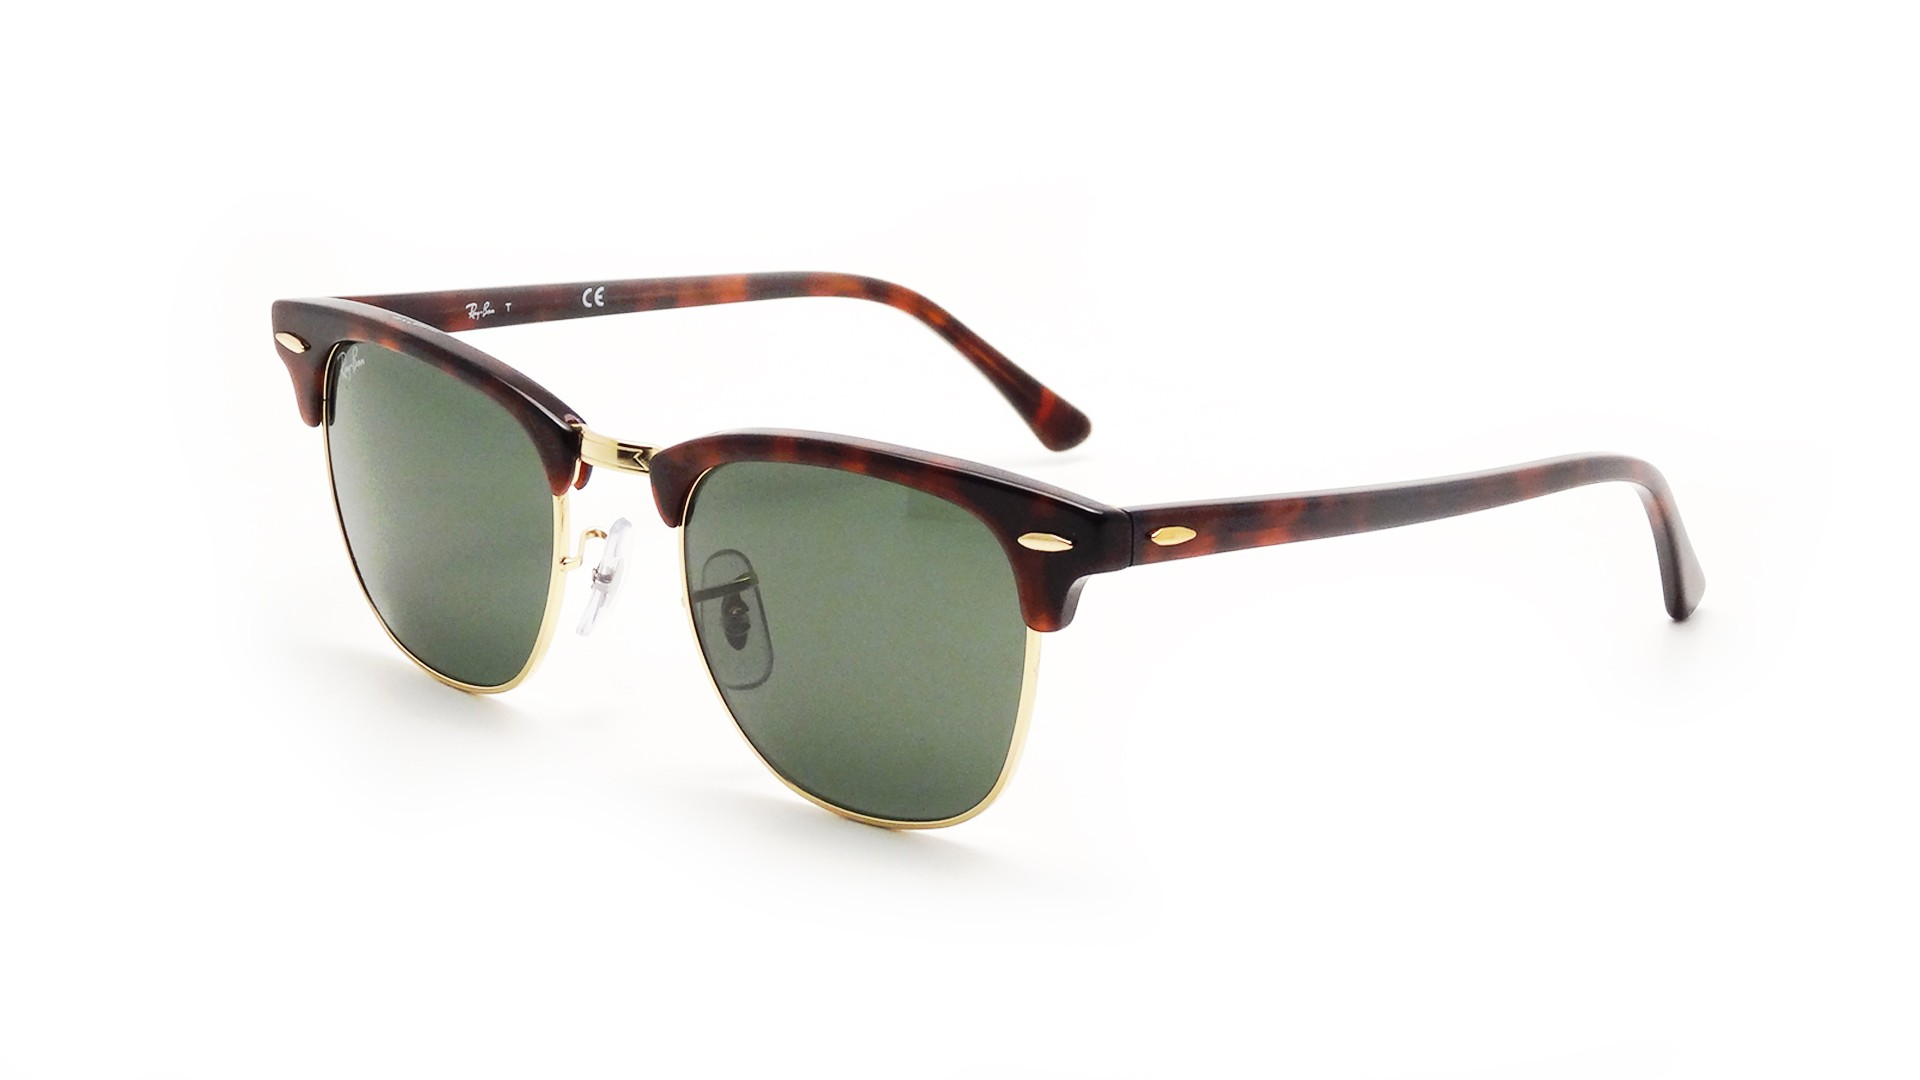 28cff47c05 Sunglasses Ray-Ban Clubmaster Classic Tortoise RB3016 W0366 49-21 Small